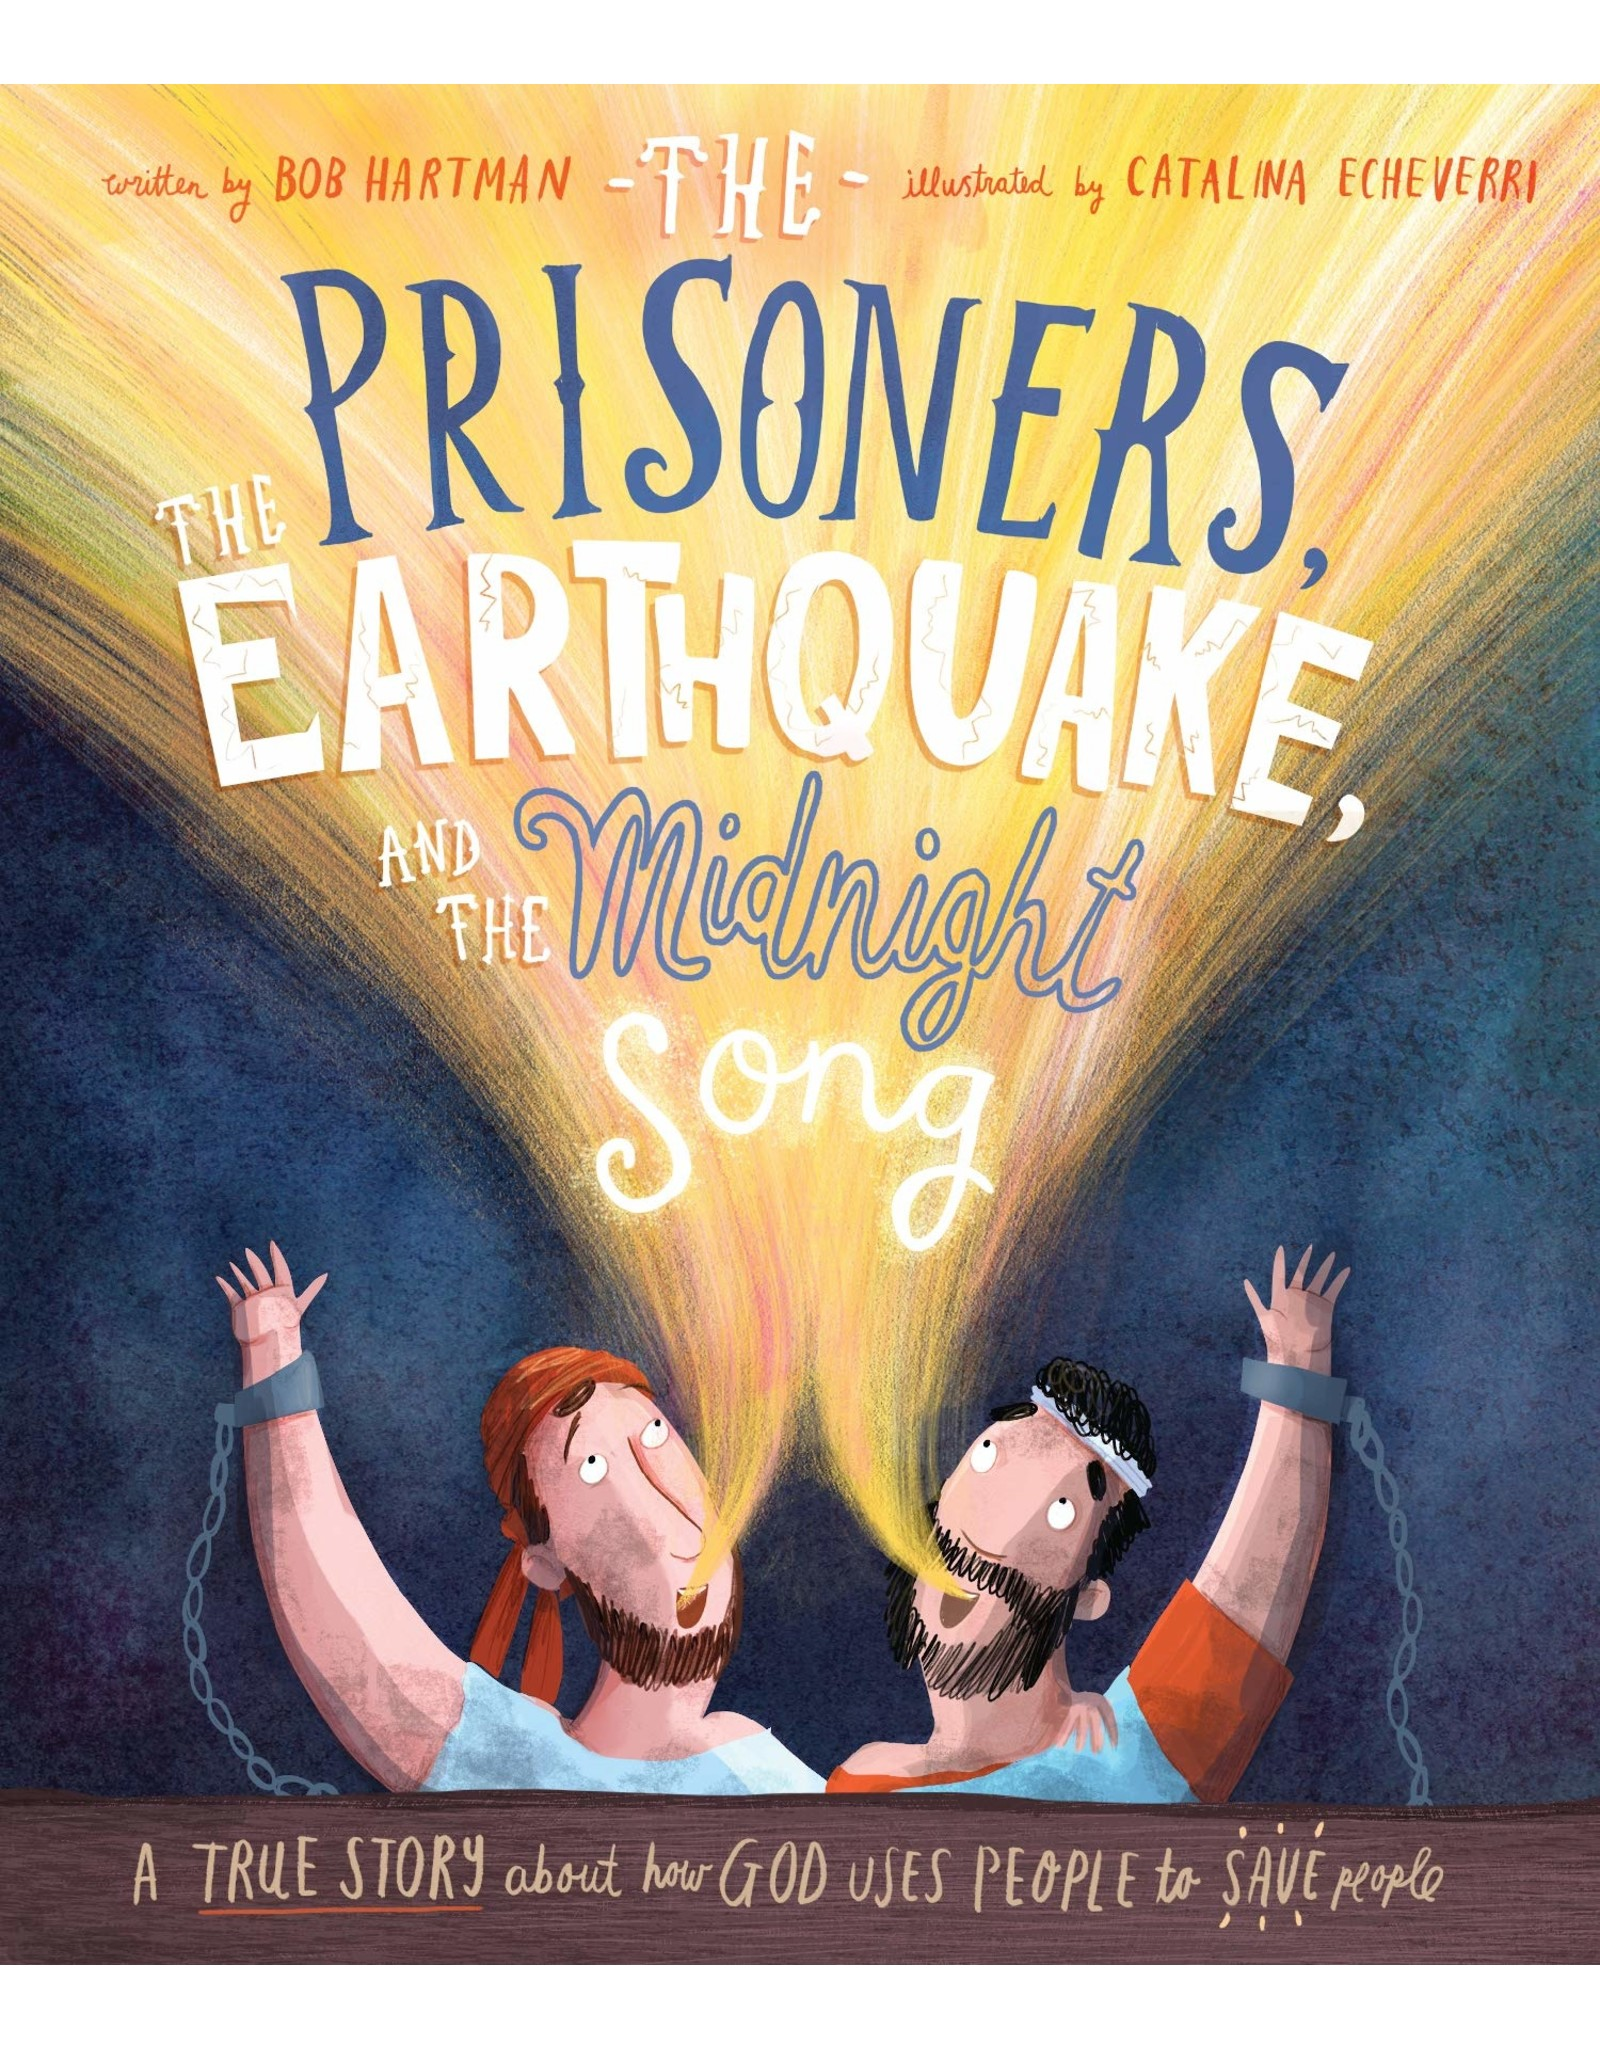 The Good Book Company The Prisoners, the Earthquake, and the Midnight Song